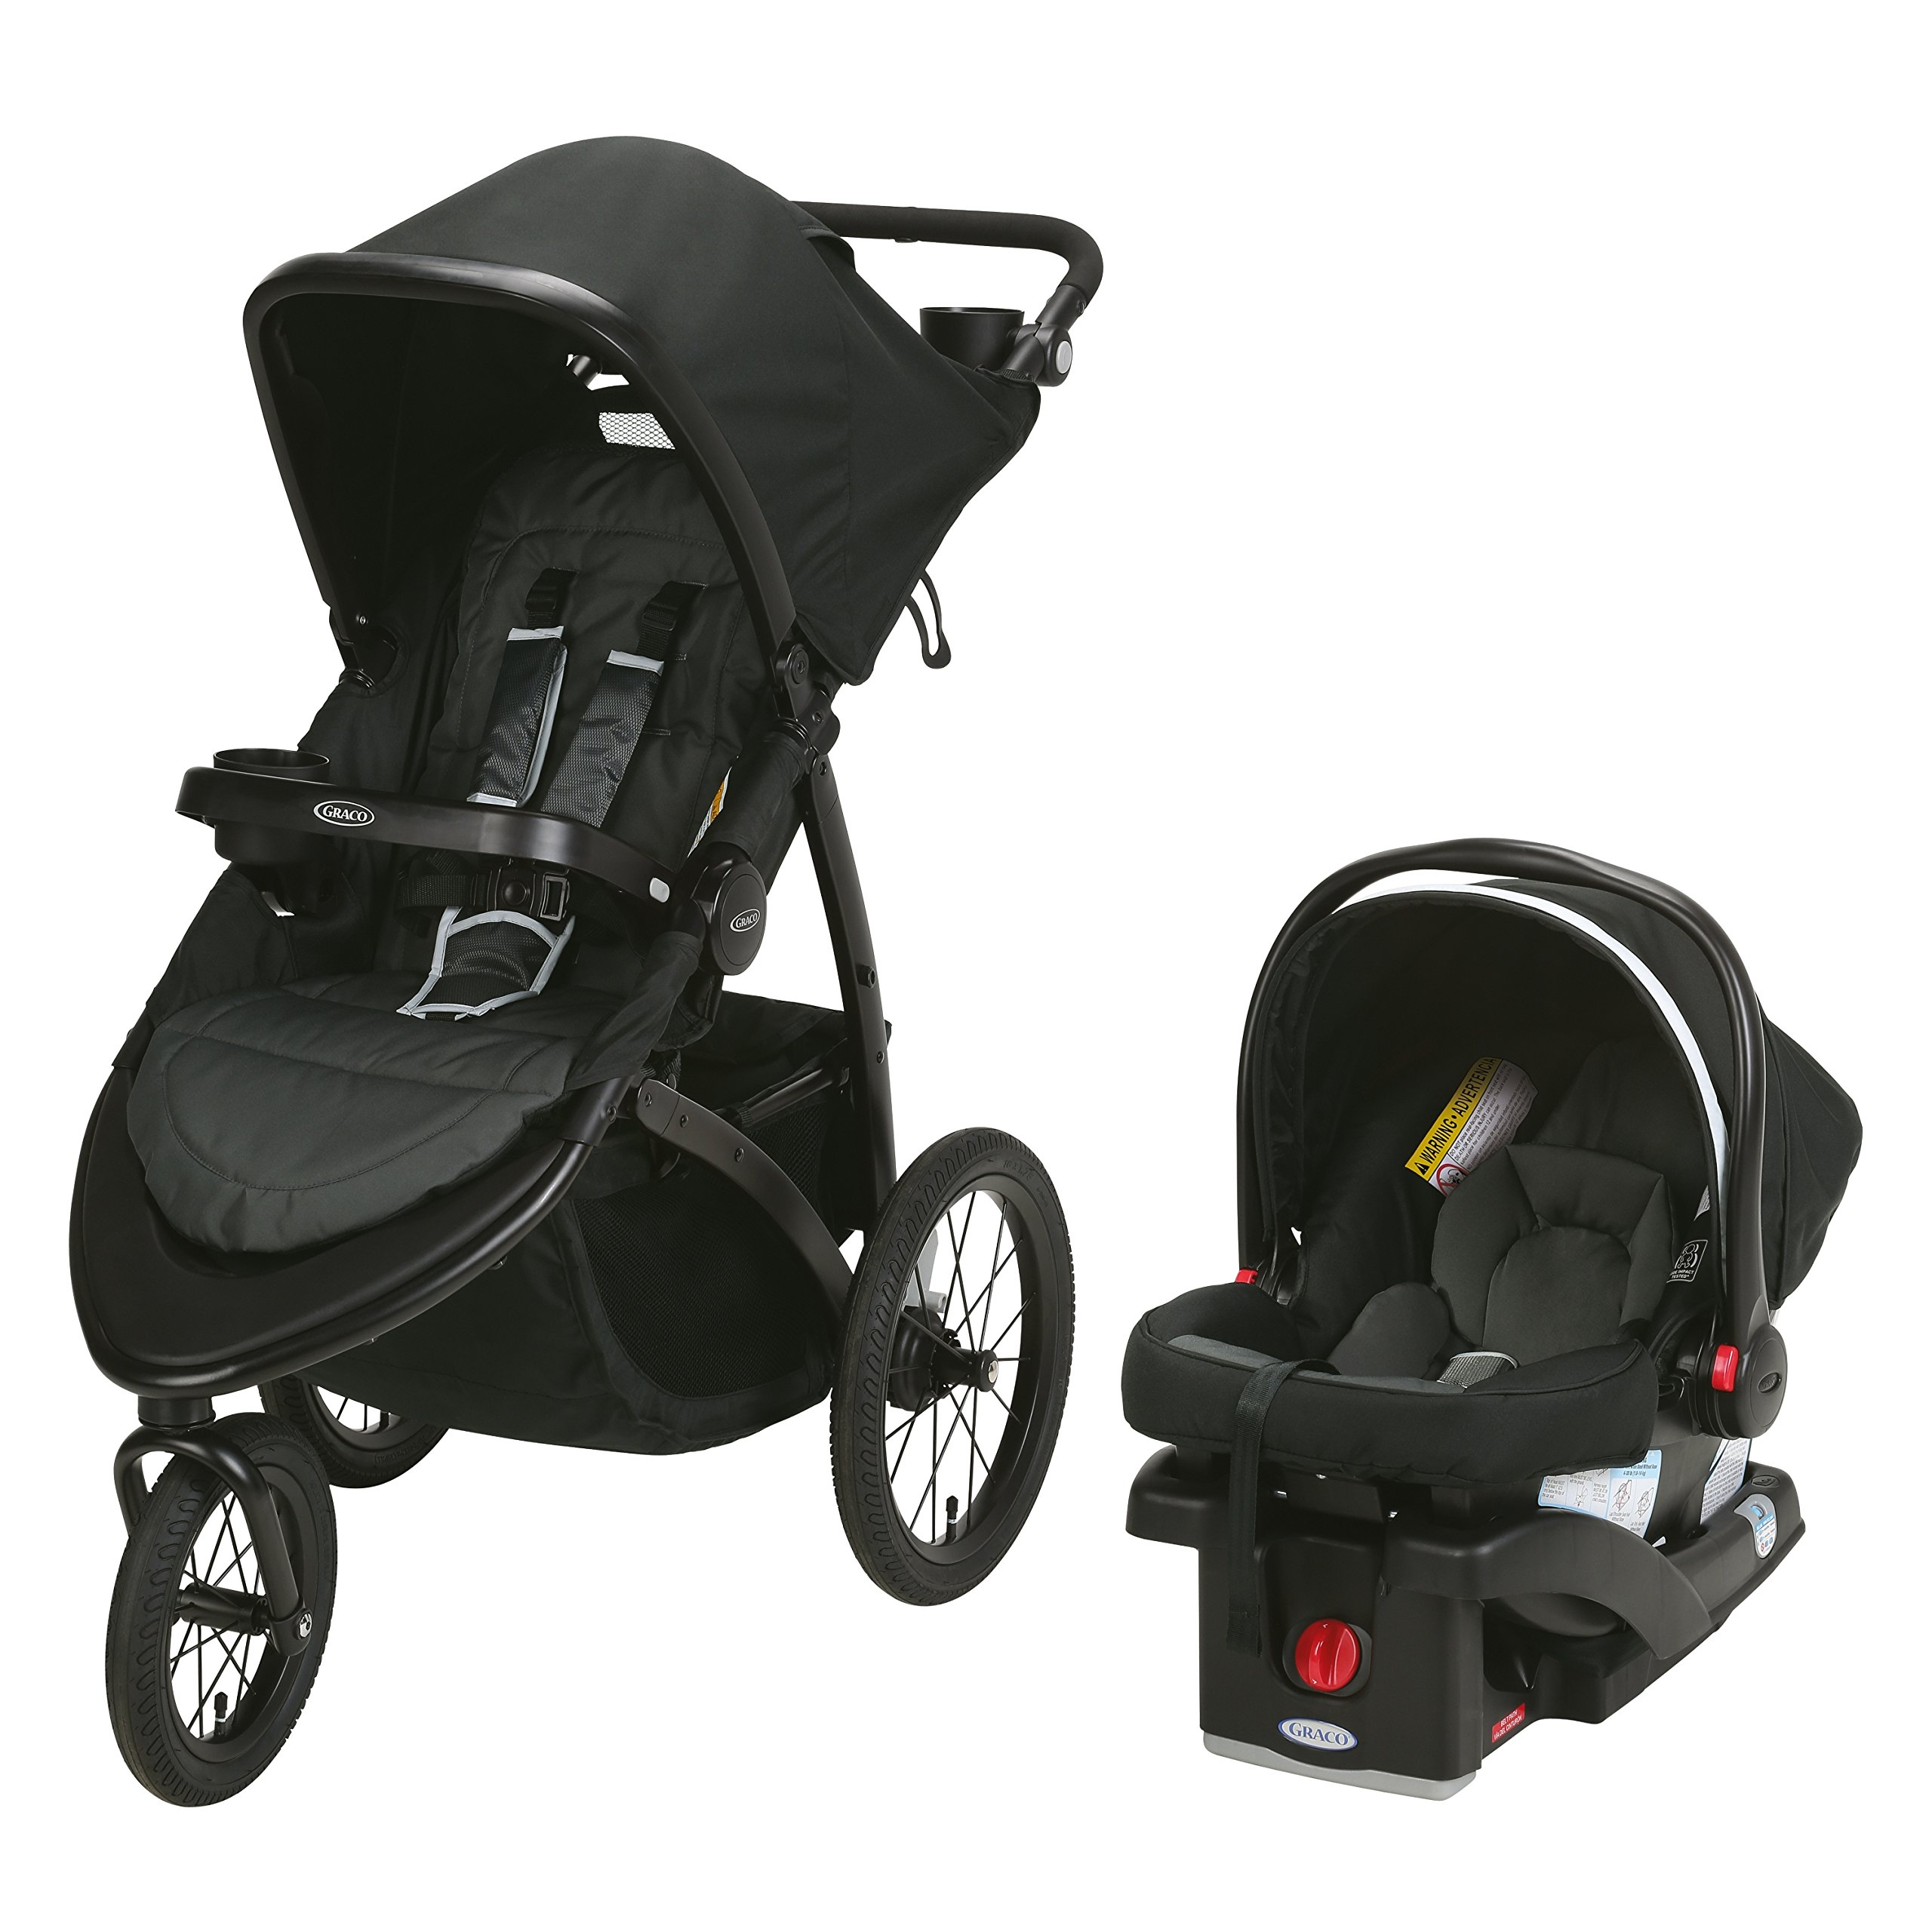 Graco Roadmaster Jogger Travel System, Spencer